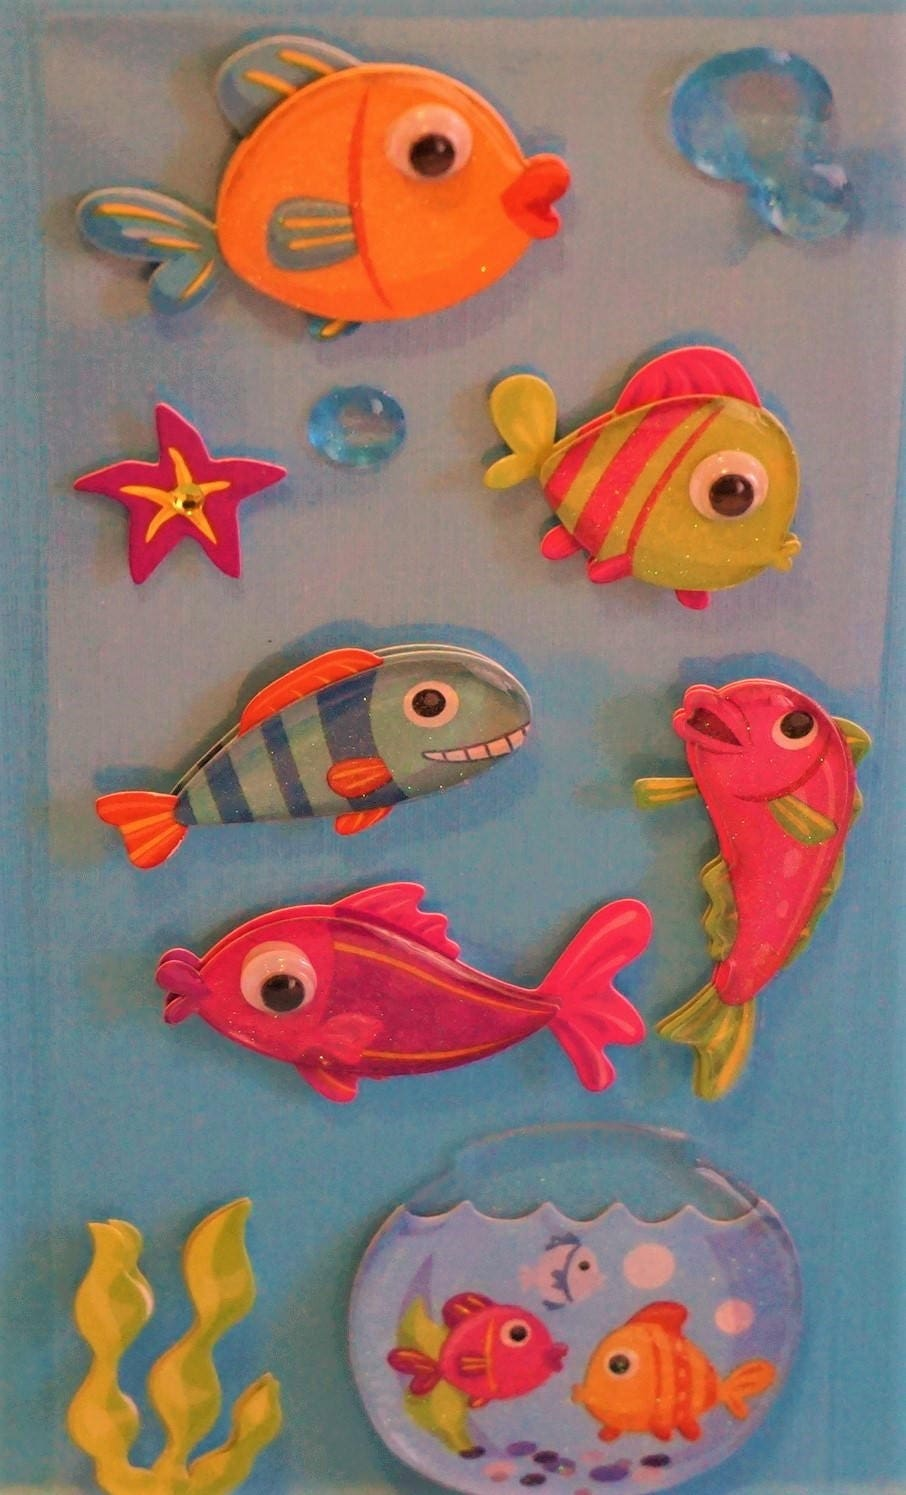 Colorful 3D Fish Stickers from TradeWindsSouth on Etsy Studio